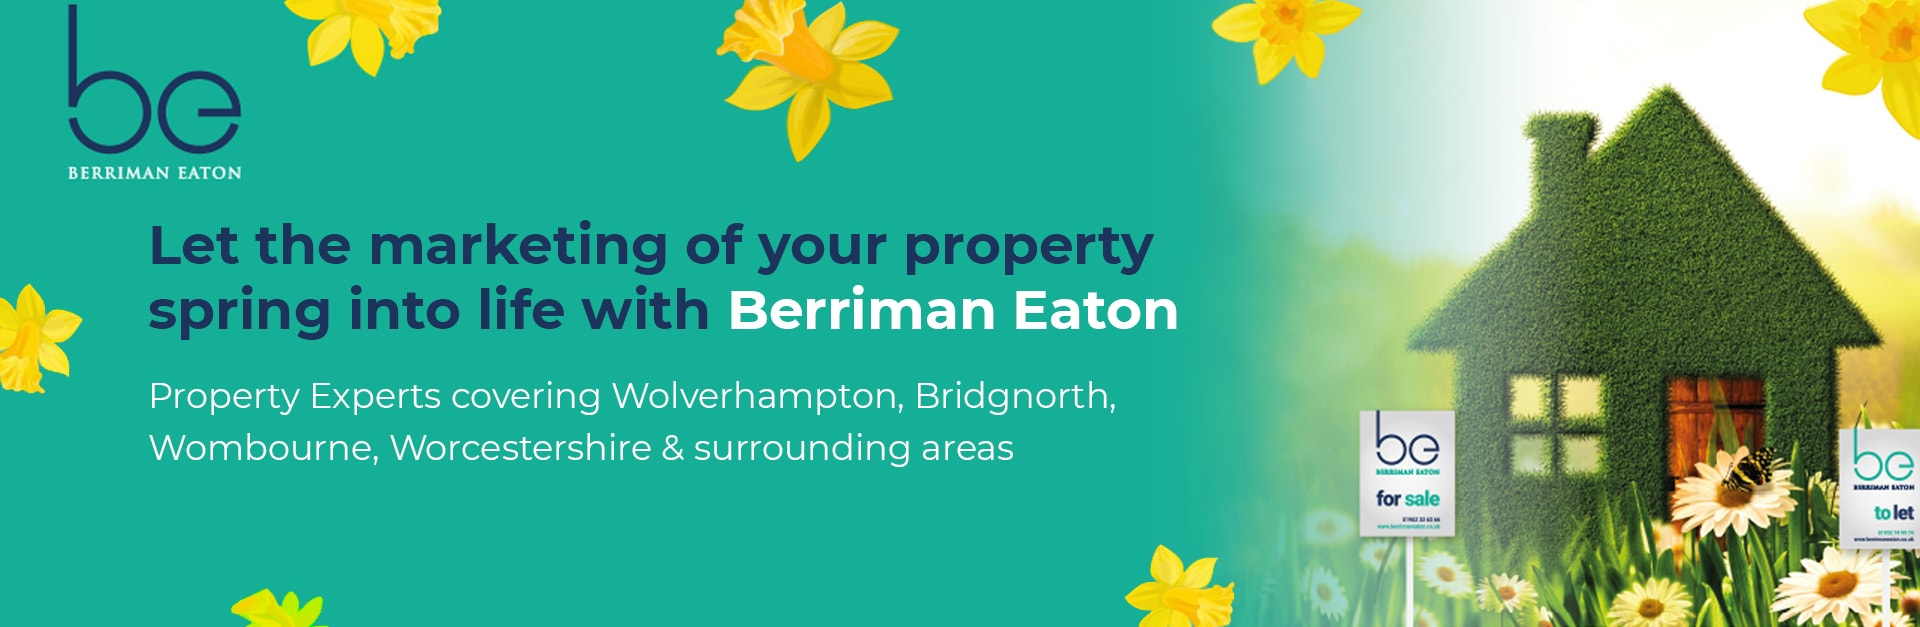 Berriman Eaton Estate Agents in Wolverhampton, Bridgnorth and Wombourne